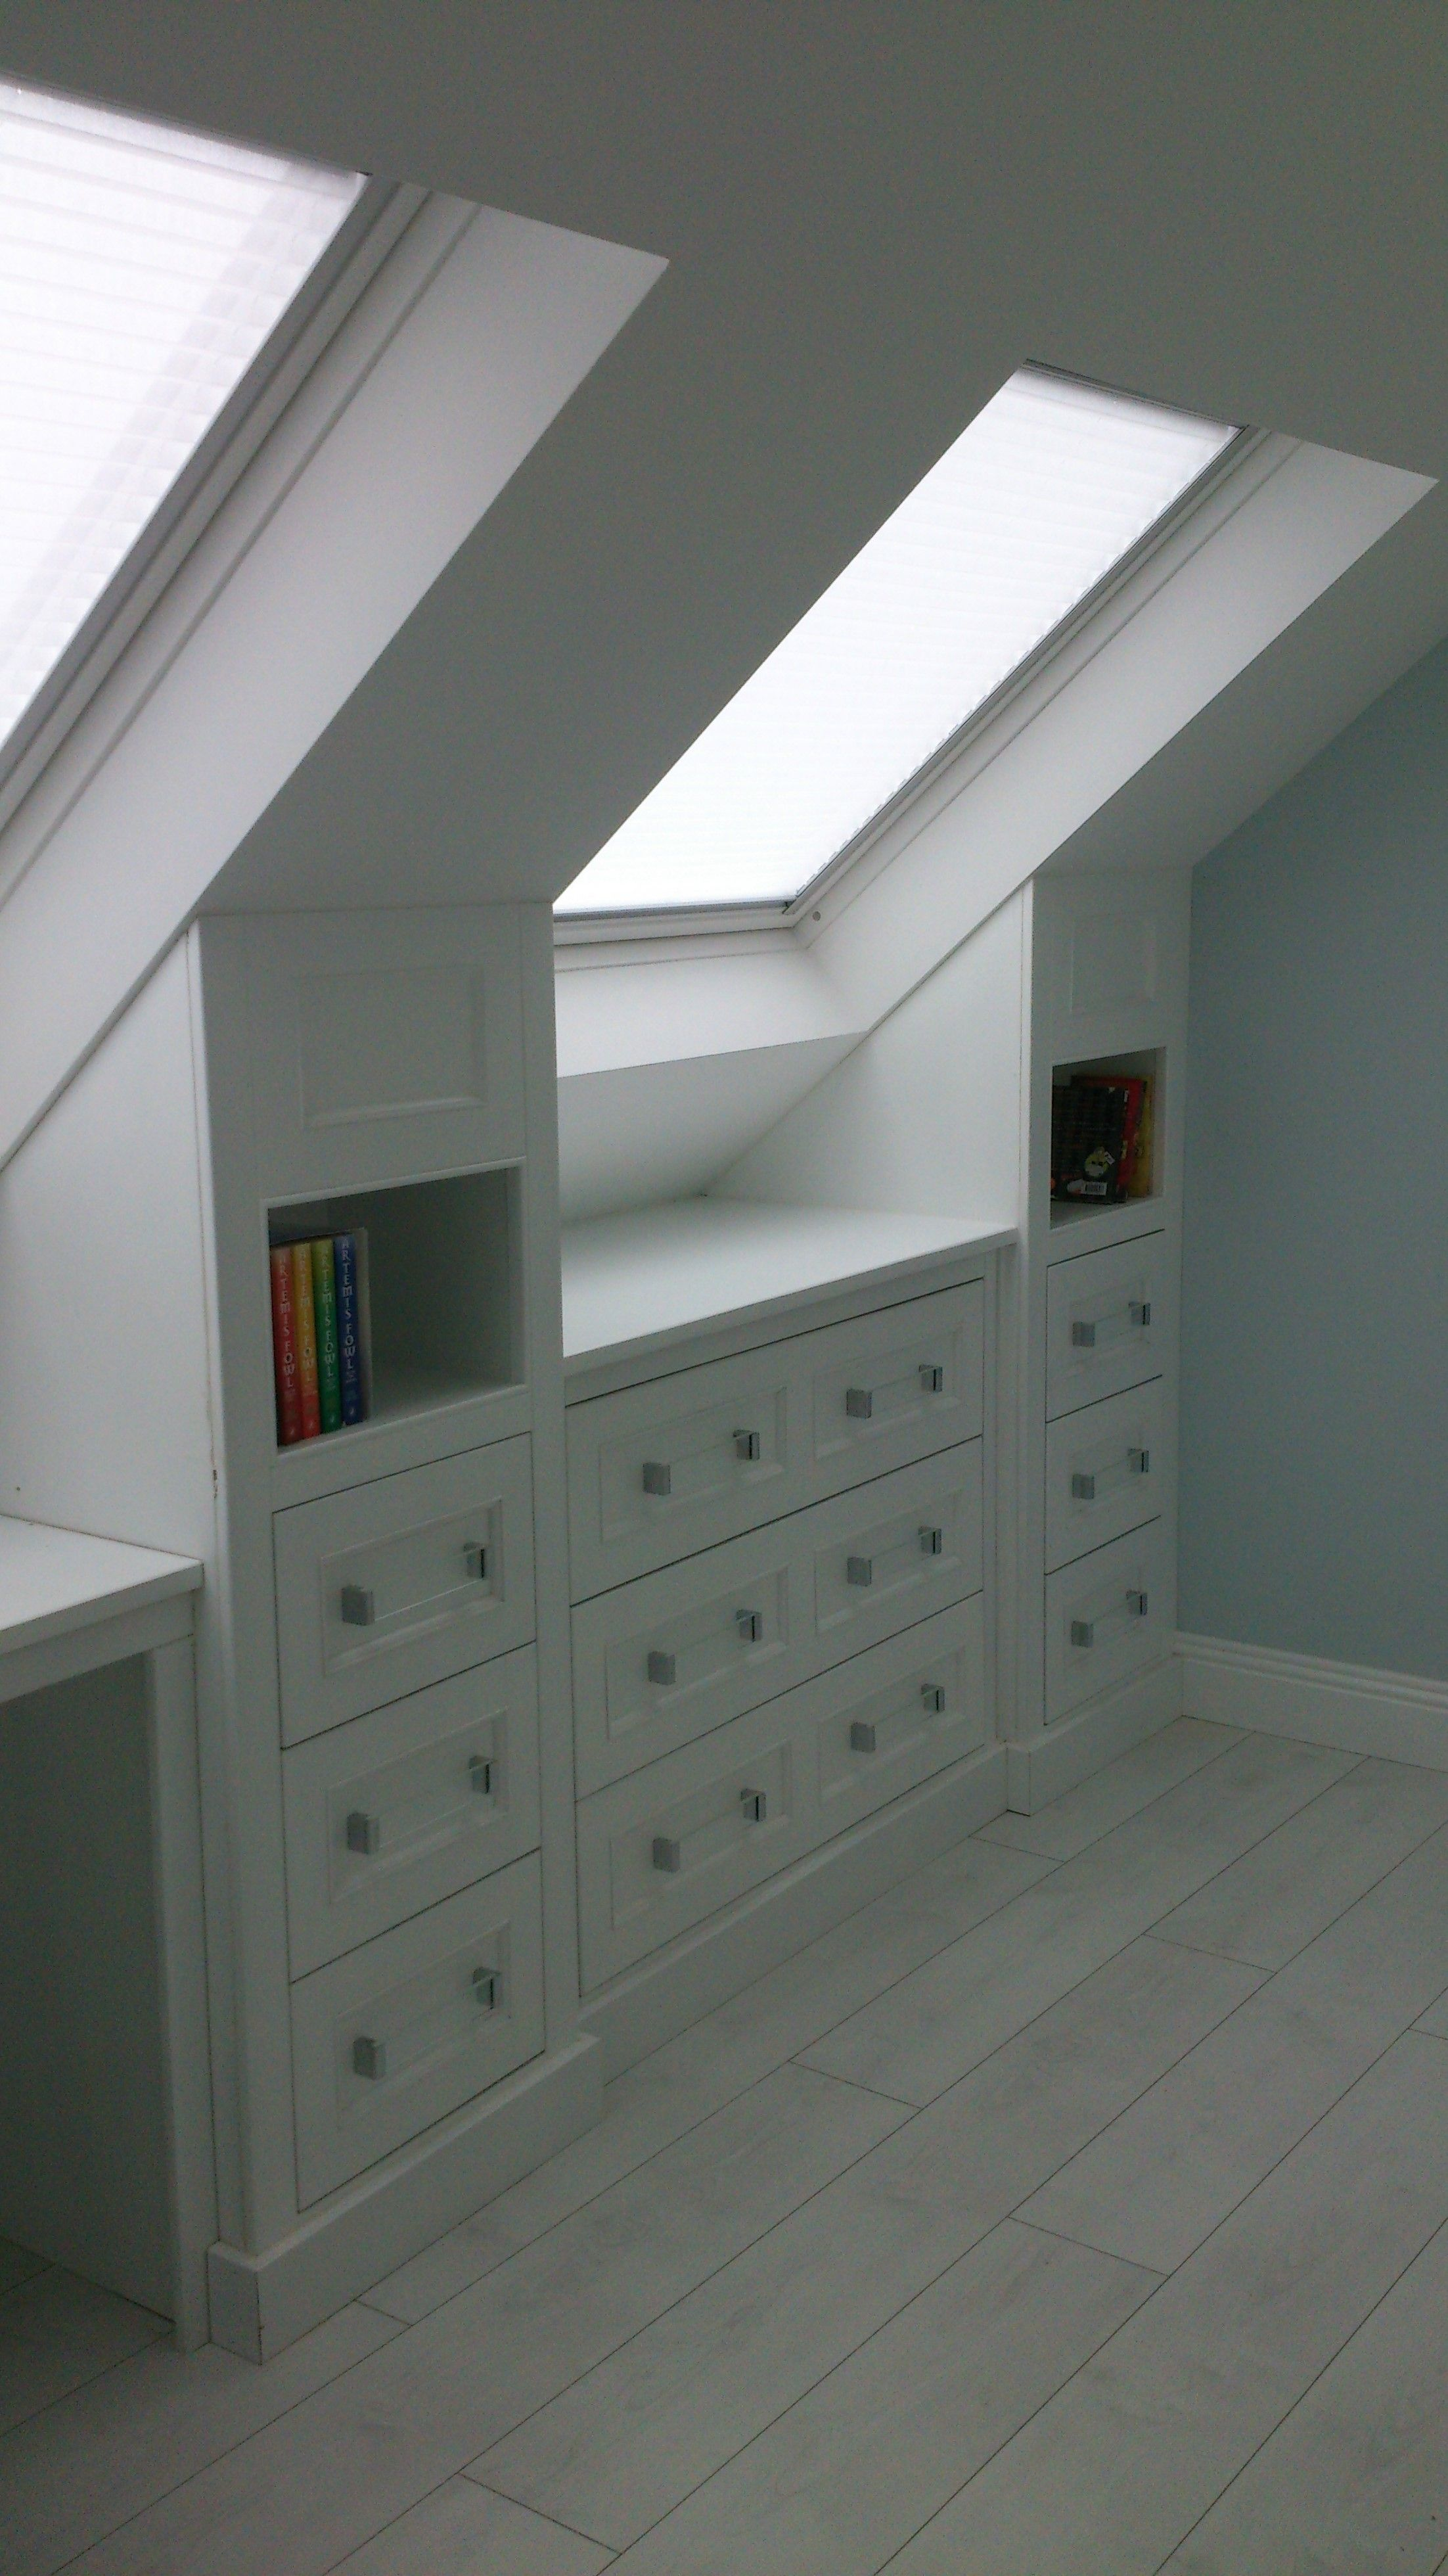 Attic Storage With Workdesk Amenagement Maison Dressing Sous Combles Et Rangement Sous Comble